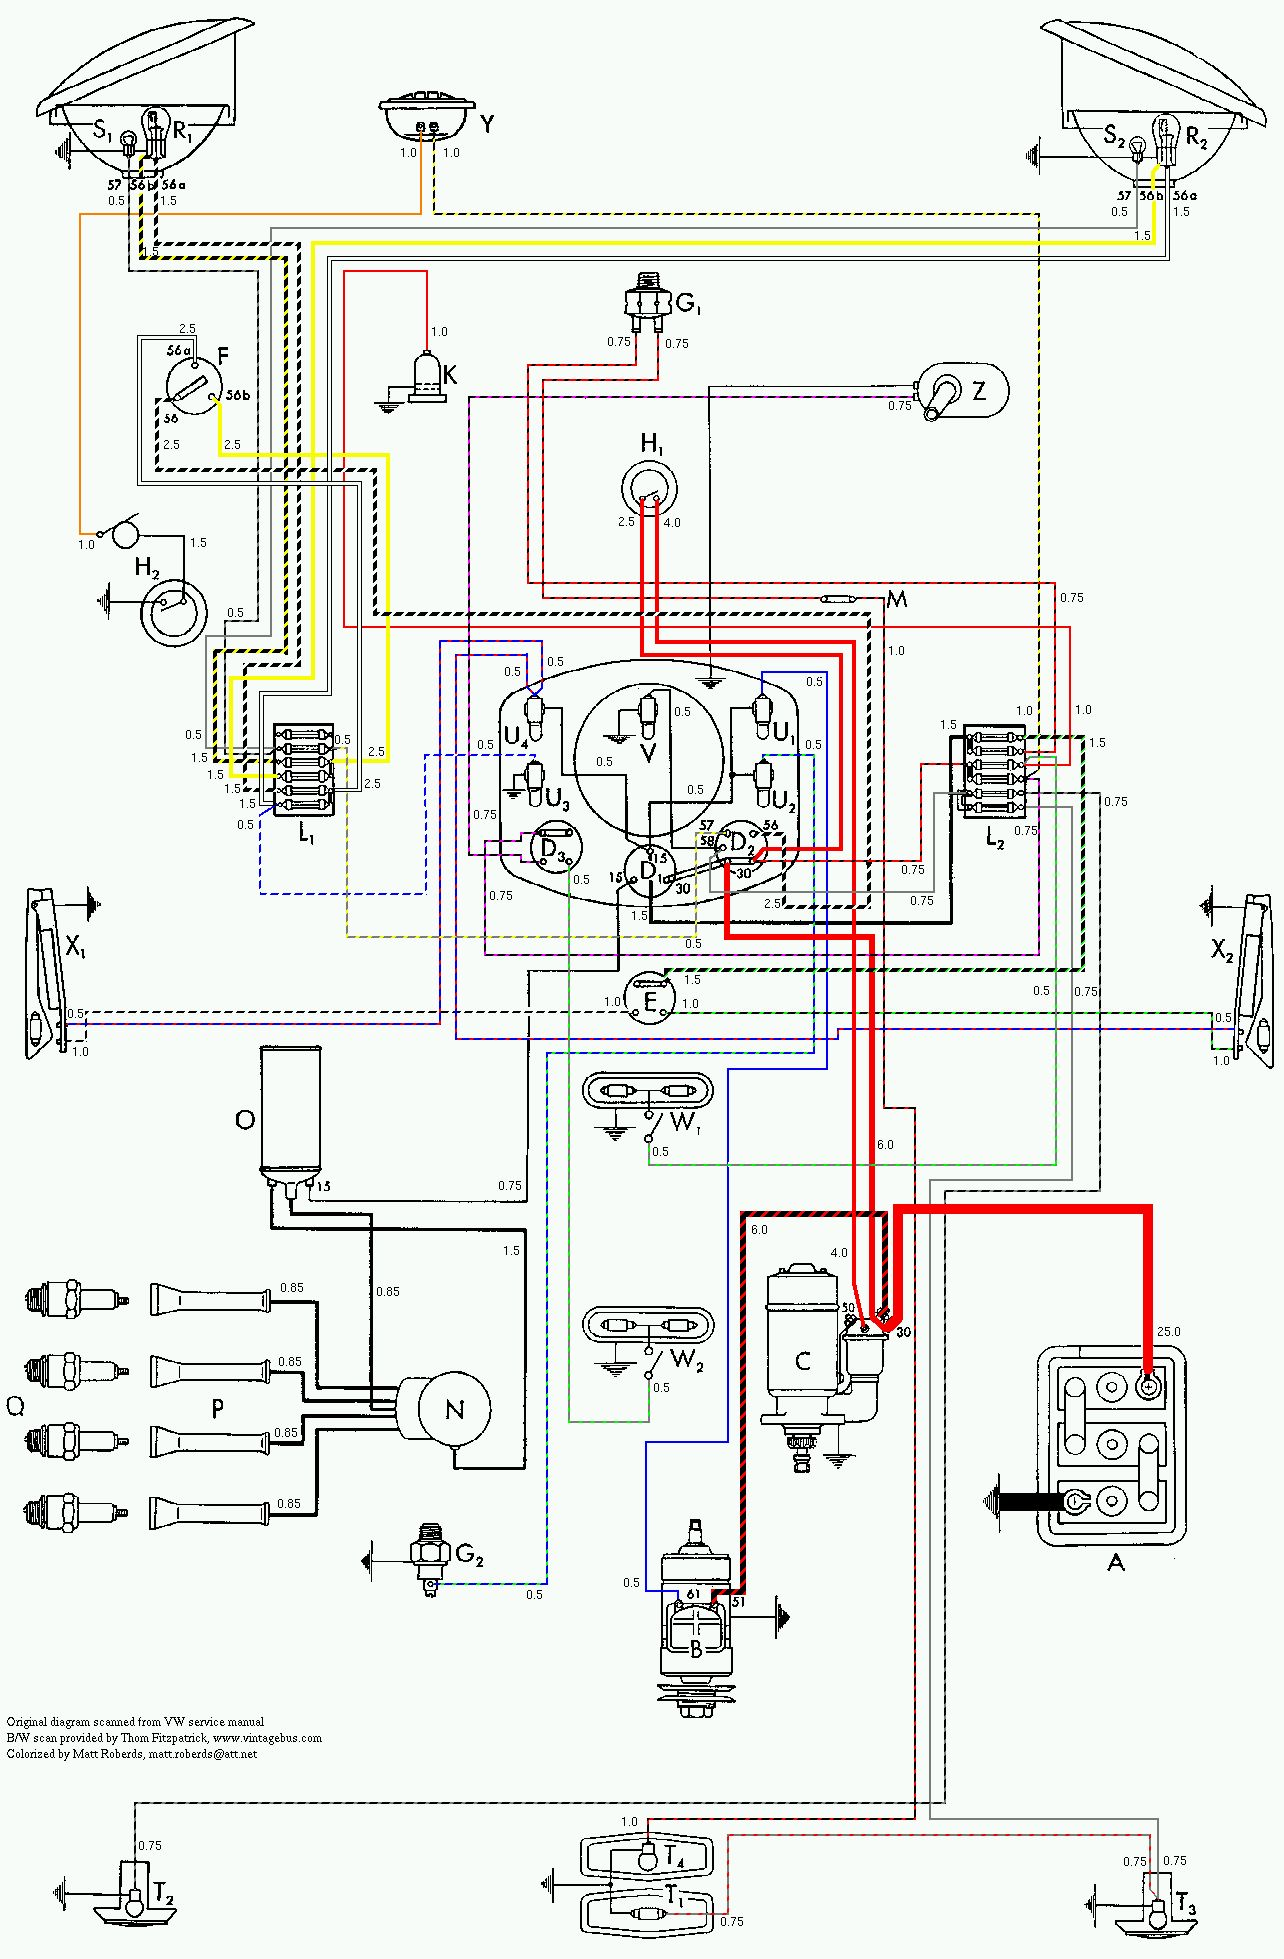 bus 53 color vintagebus com vw bus (and other) wiring diagrams 12 Volt Relay Wiring Diagrams at reclaimingppi.co